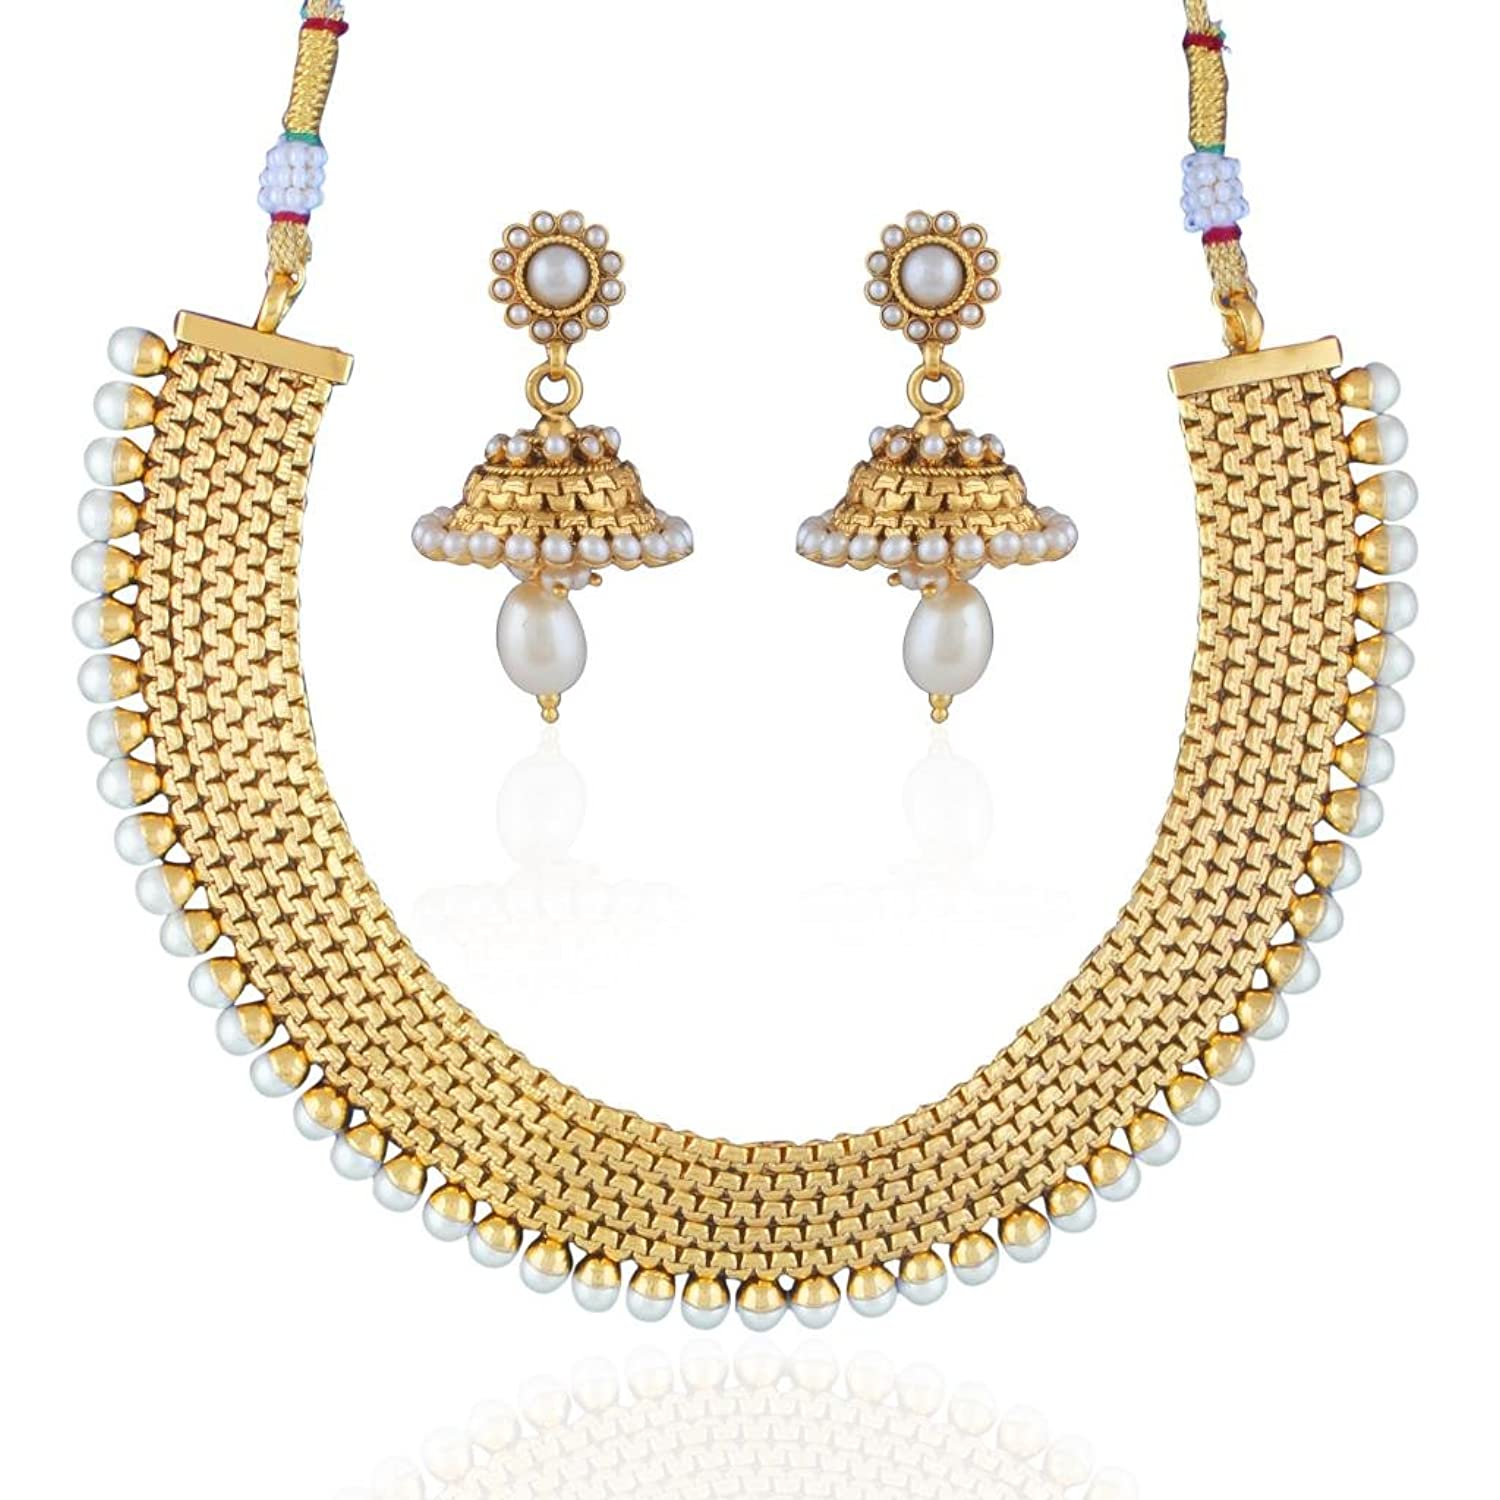 Inspirational Gold Necklace Designs Images | Jewellry\'s Website